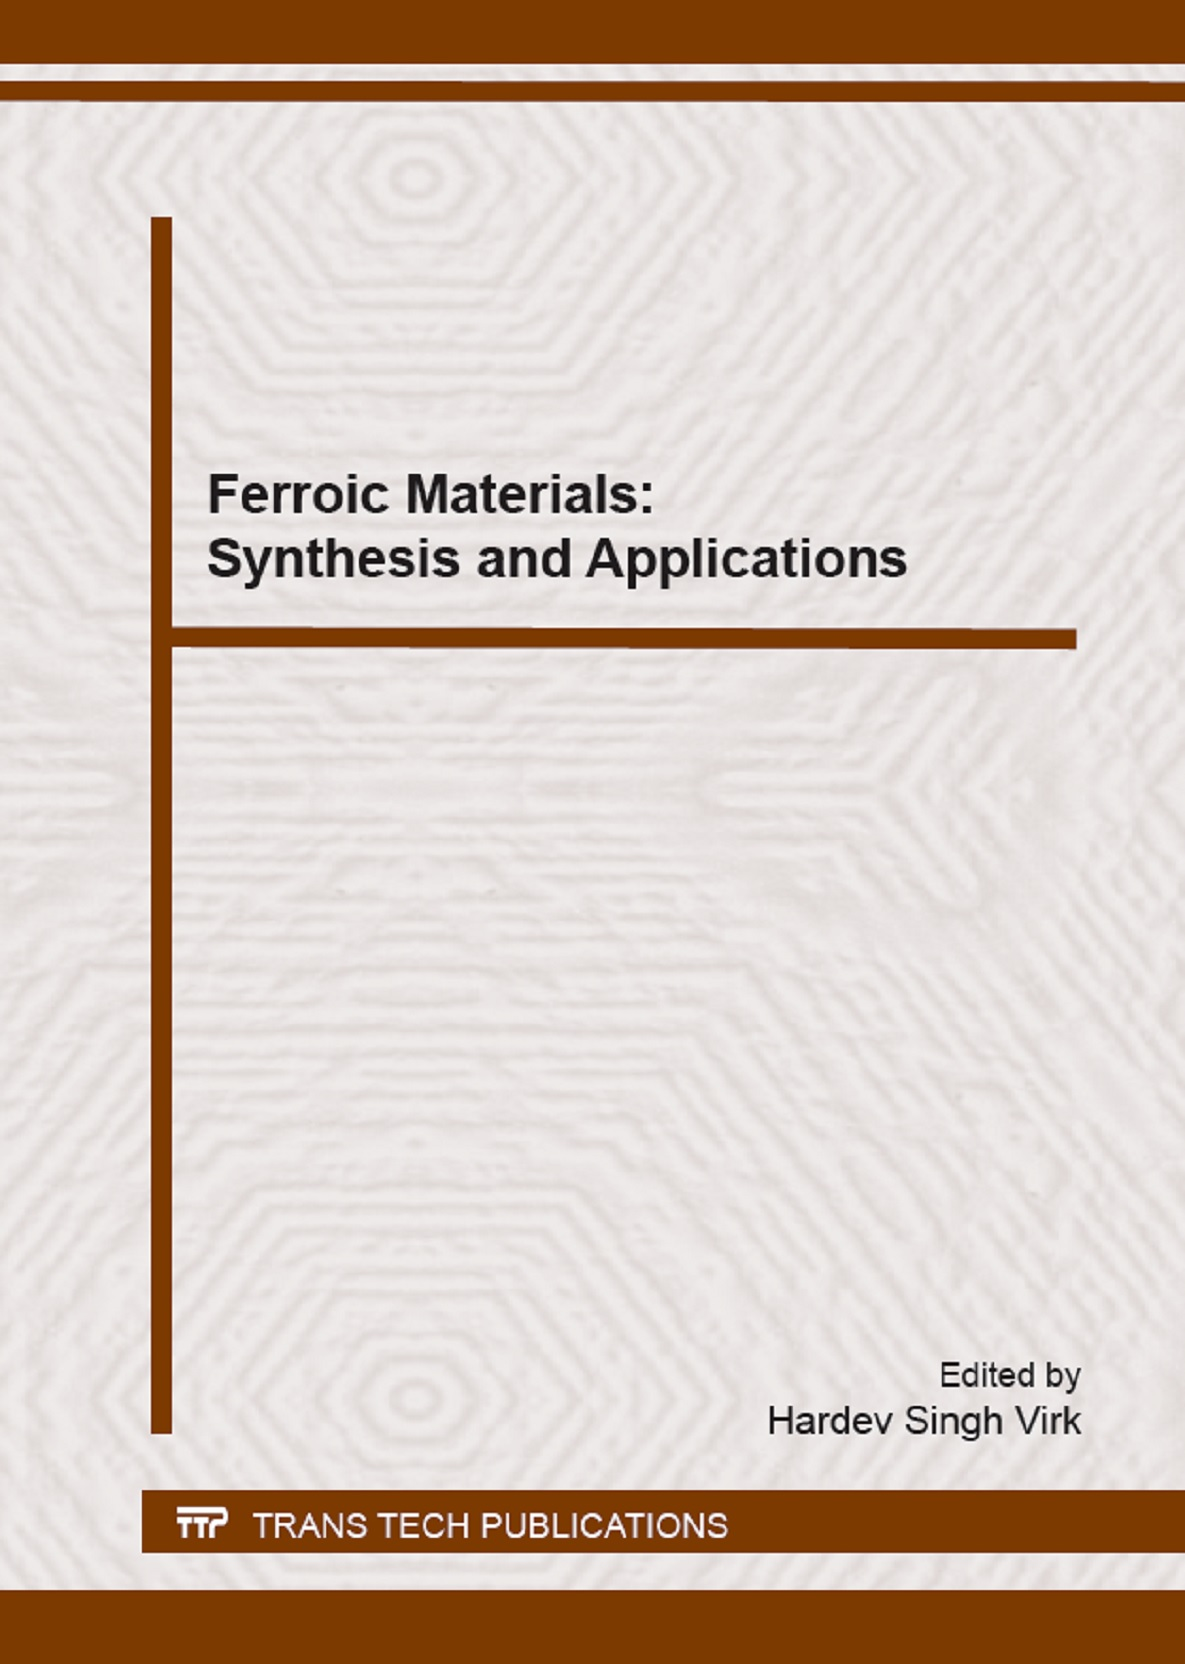 Ferroic Materials: Synthesis and Applications